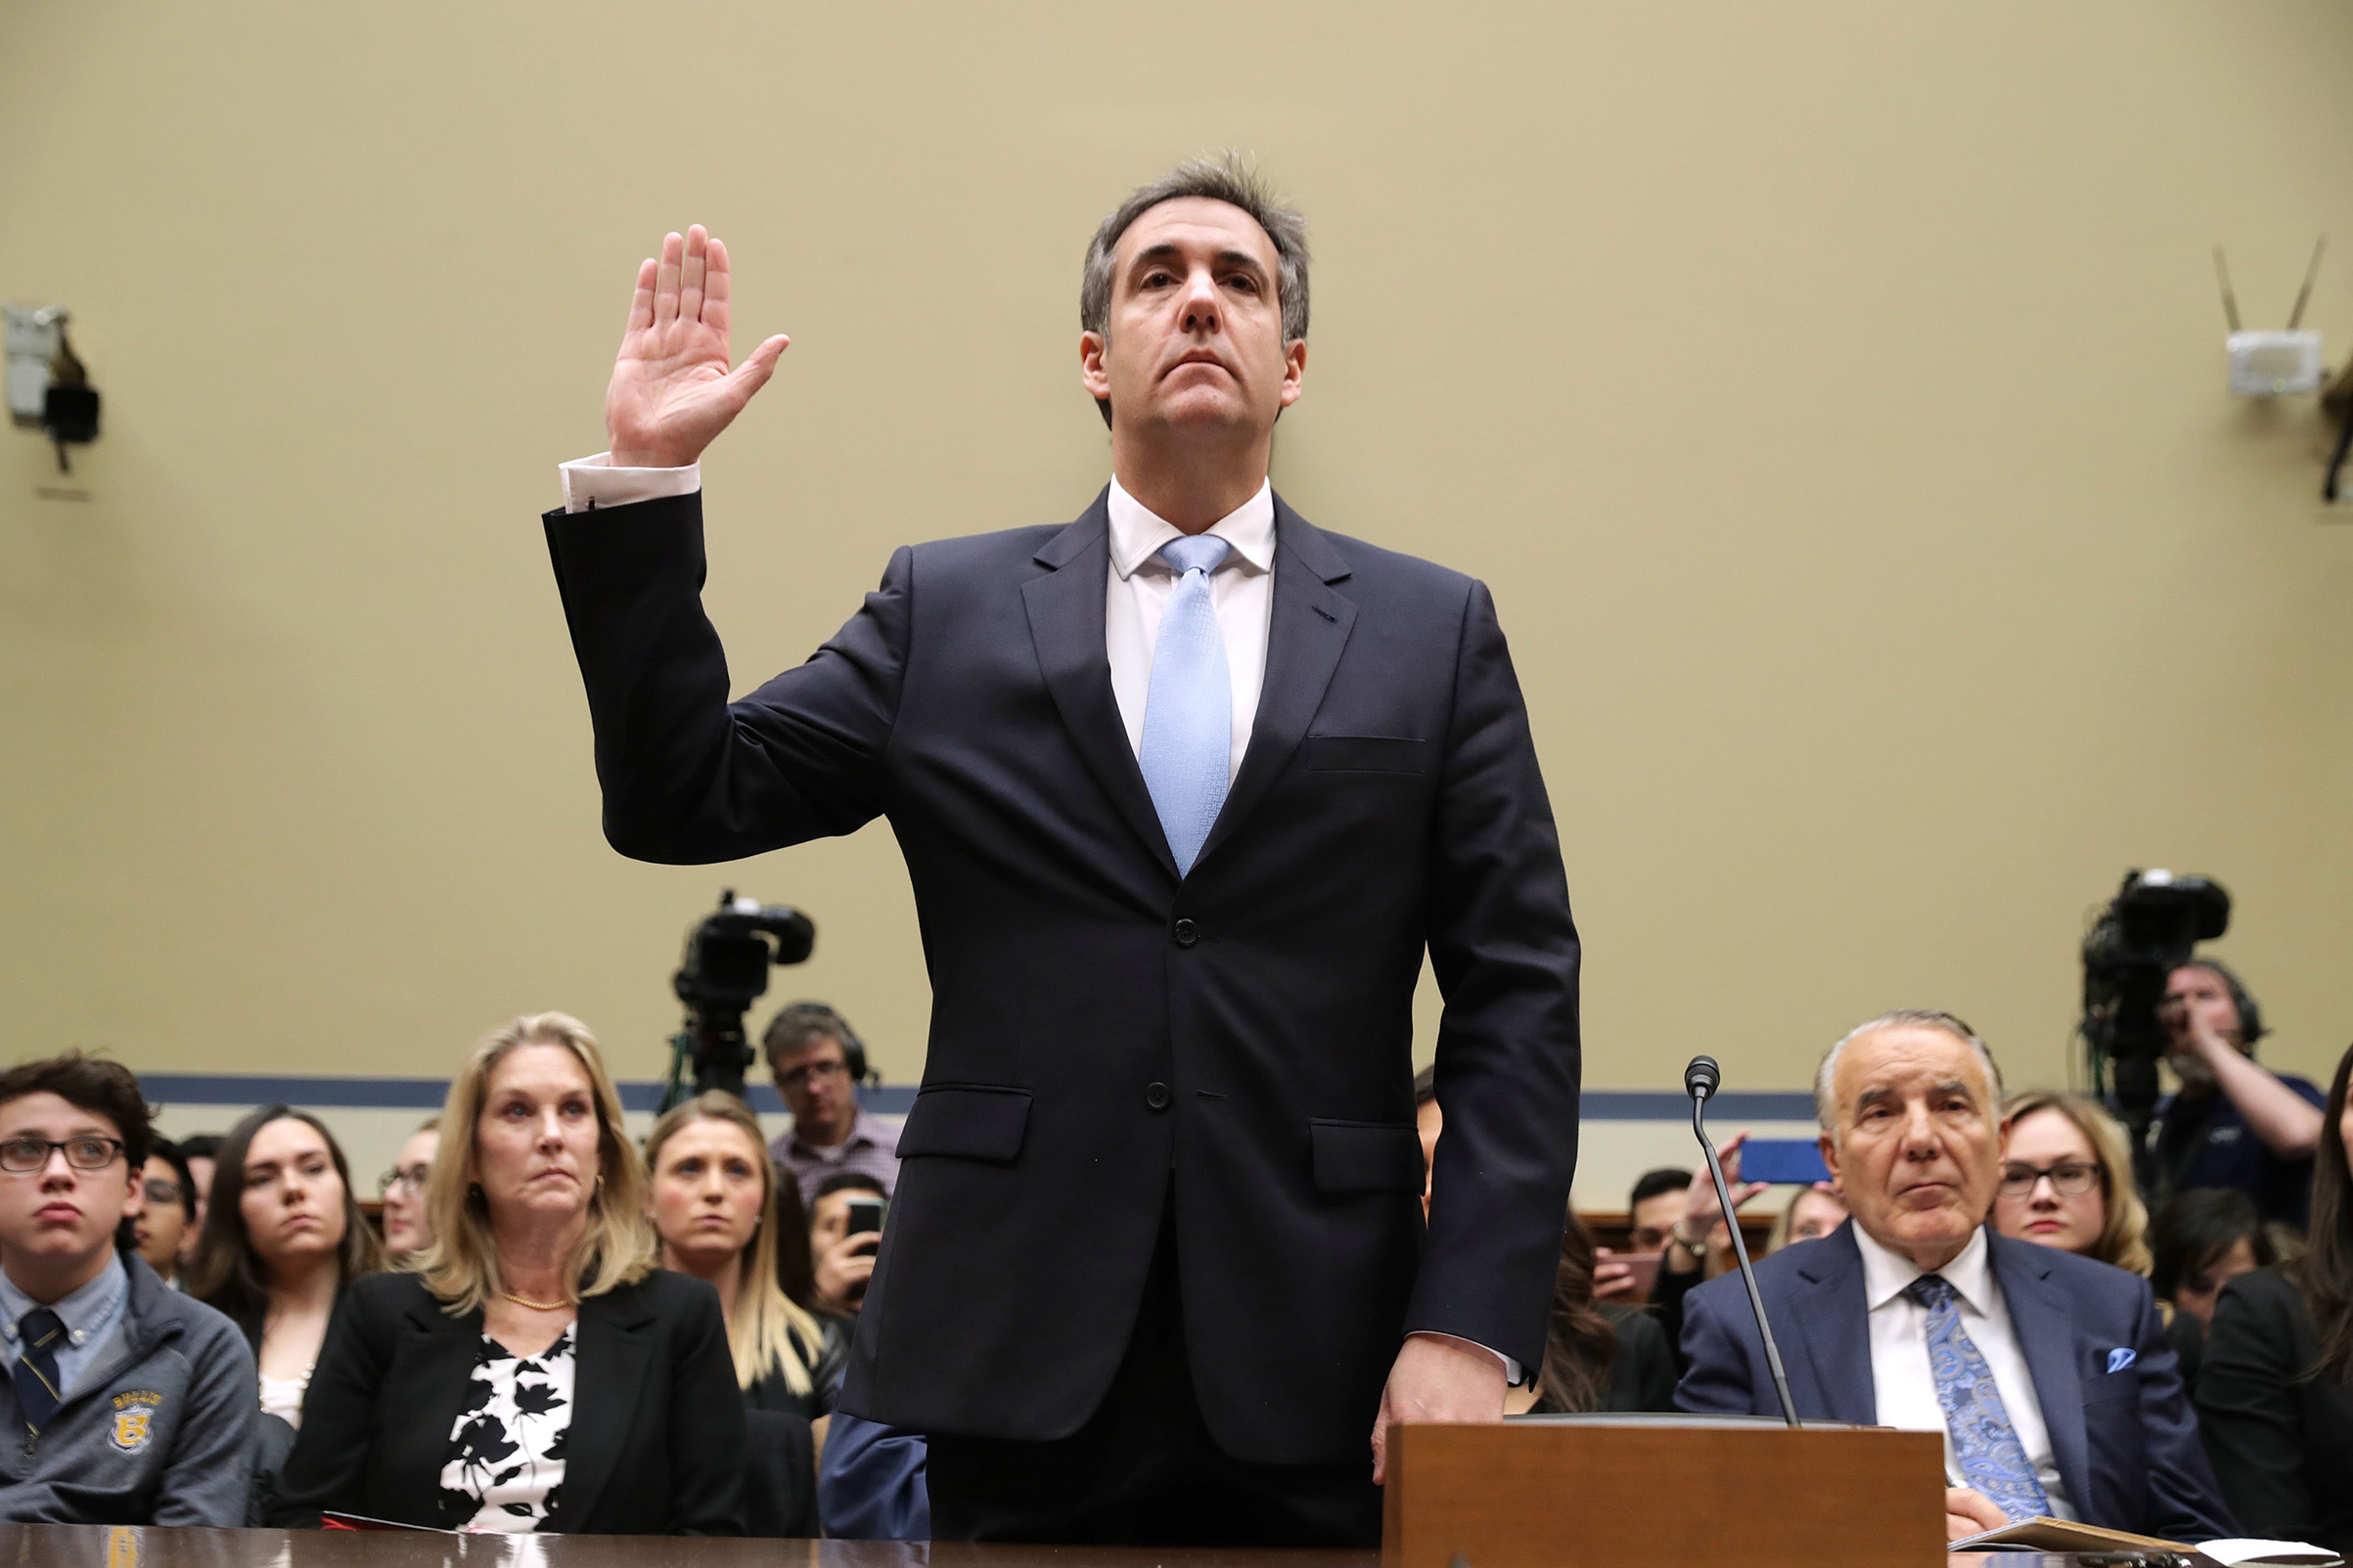 The President's ex-lawyer, Michael Cohen, testifies Feb. 27 before House investigators